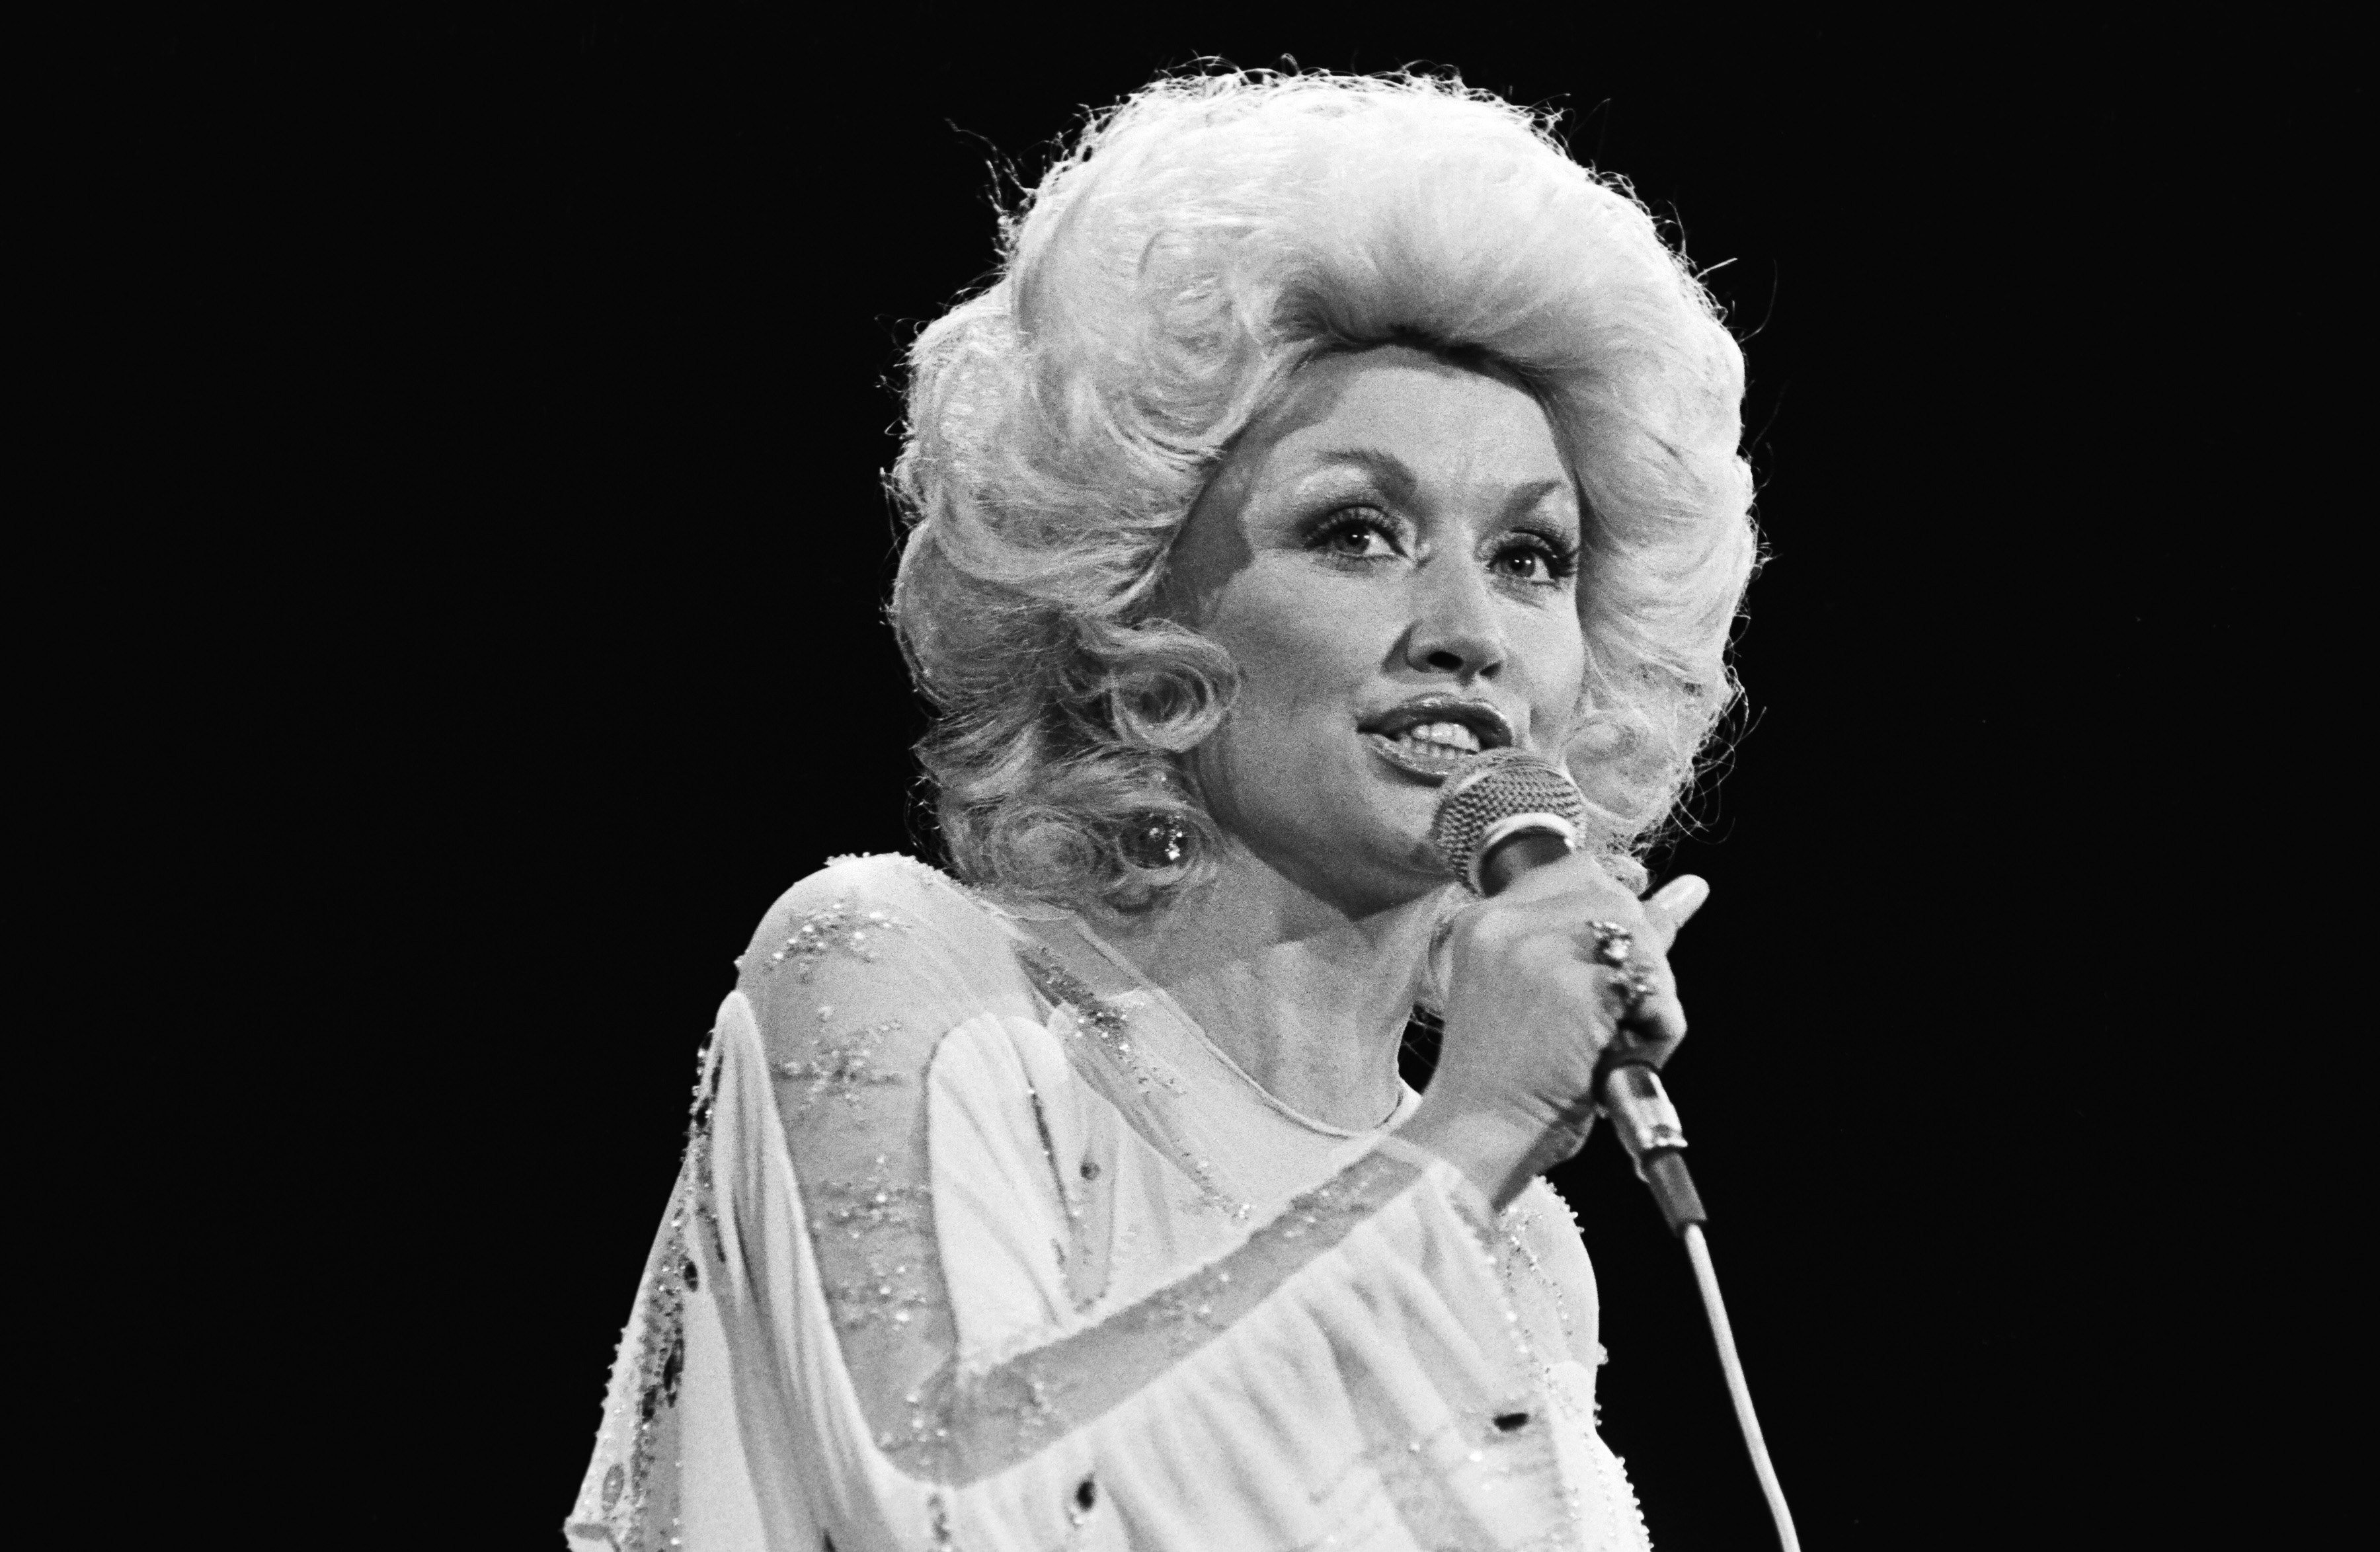 Image Credits: Getty Images / George Rose | Country singer, Dolly Parton, performs one of her many hits in this 1981 Universal City, California, live concert photo.